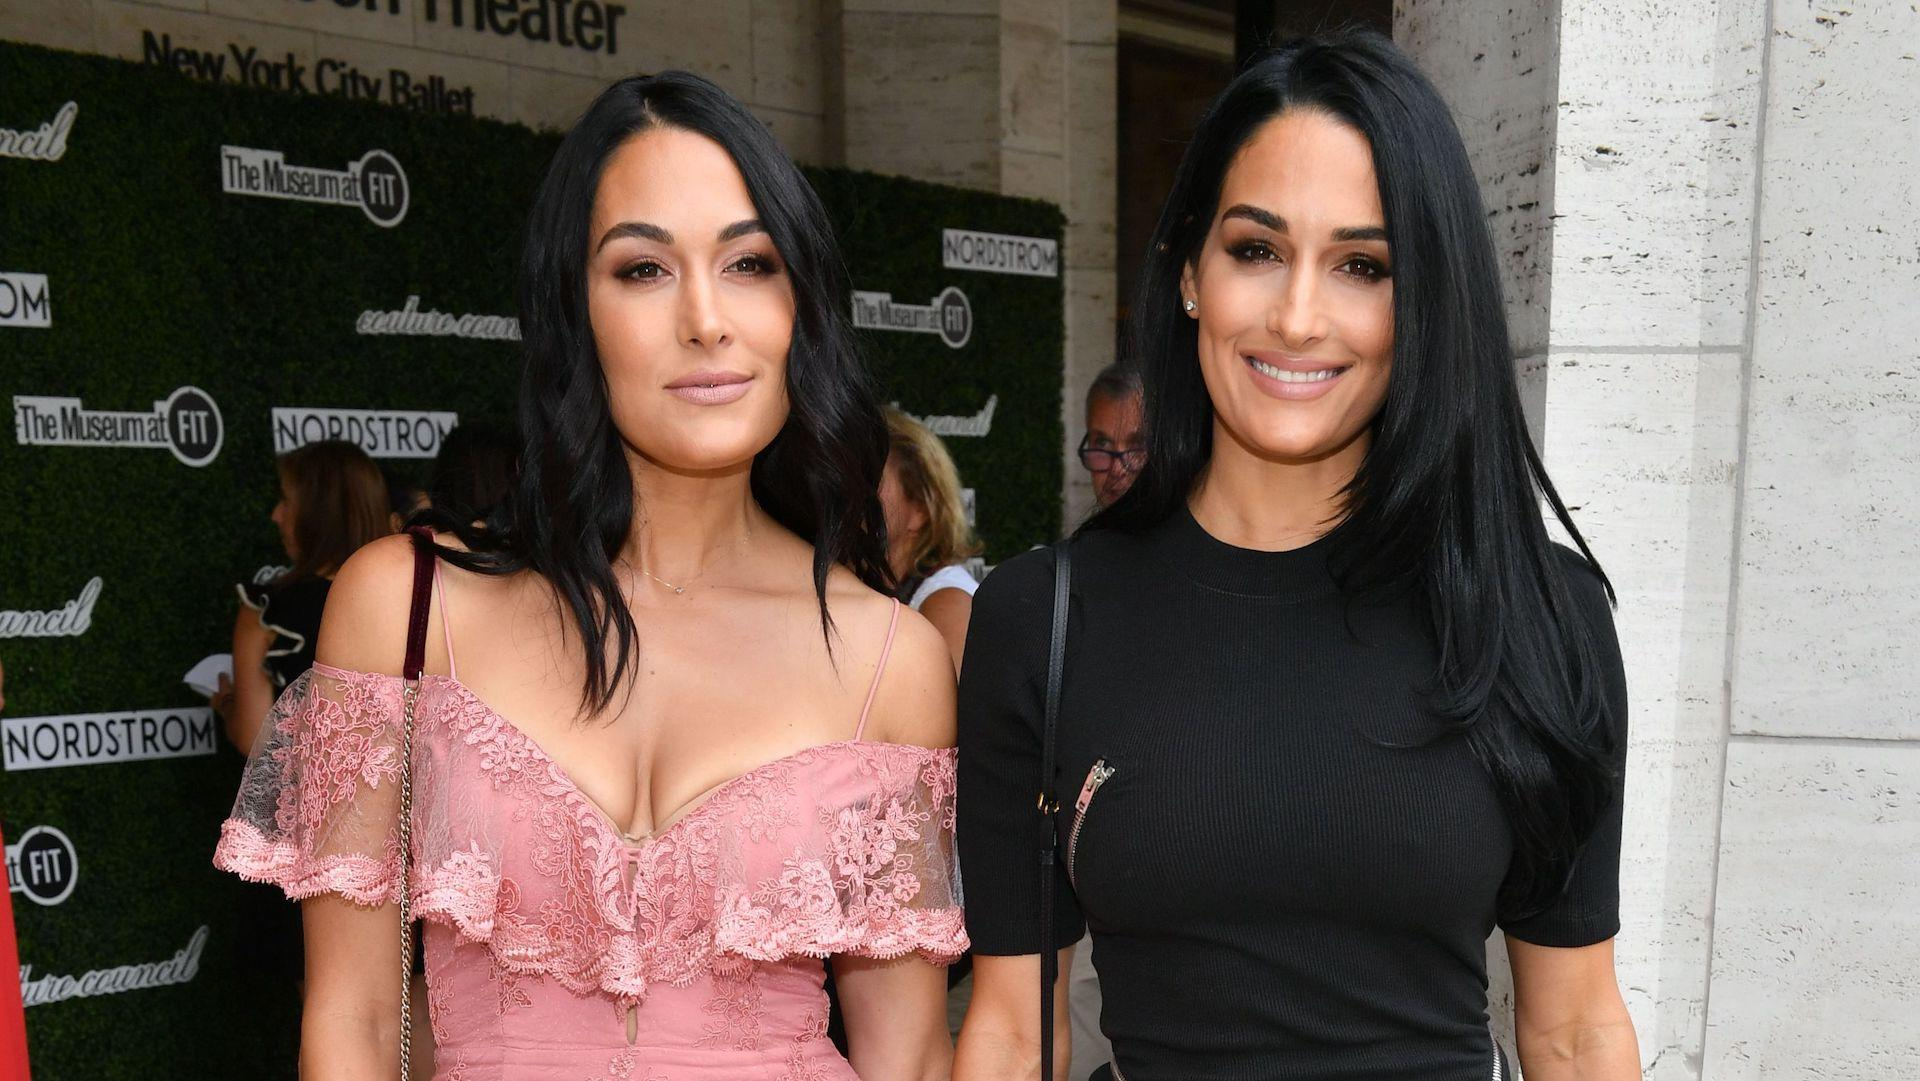 The Bella Twins Looking Hot Before the Kids Choice Awards